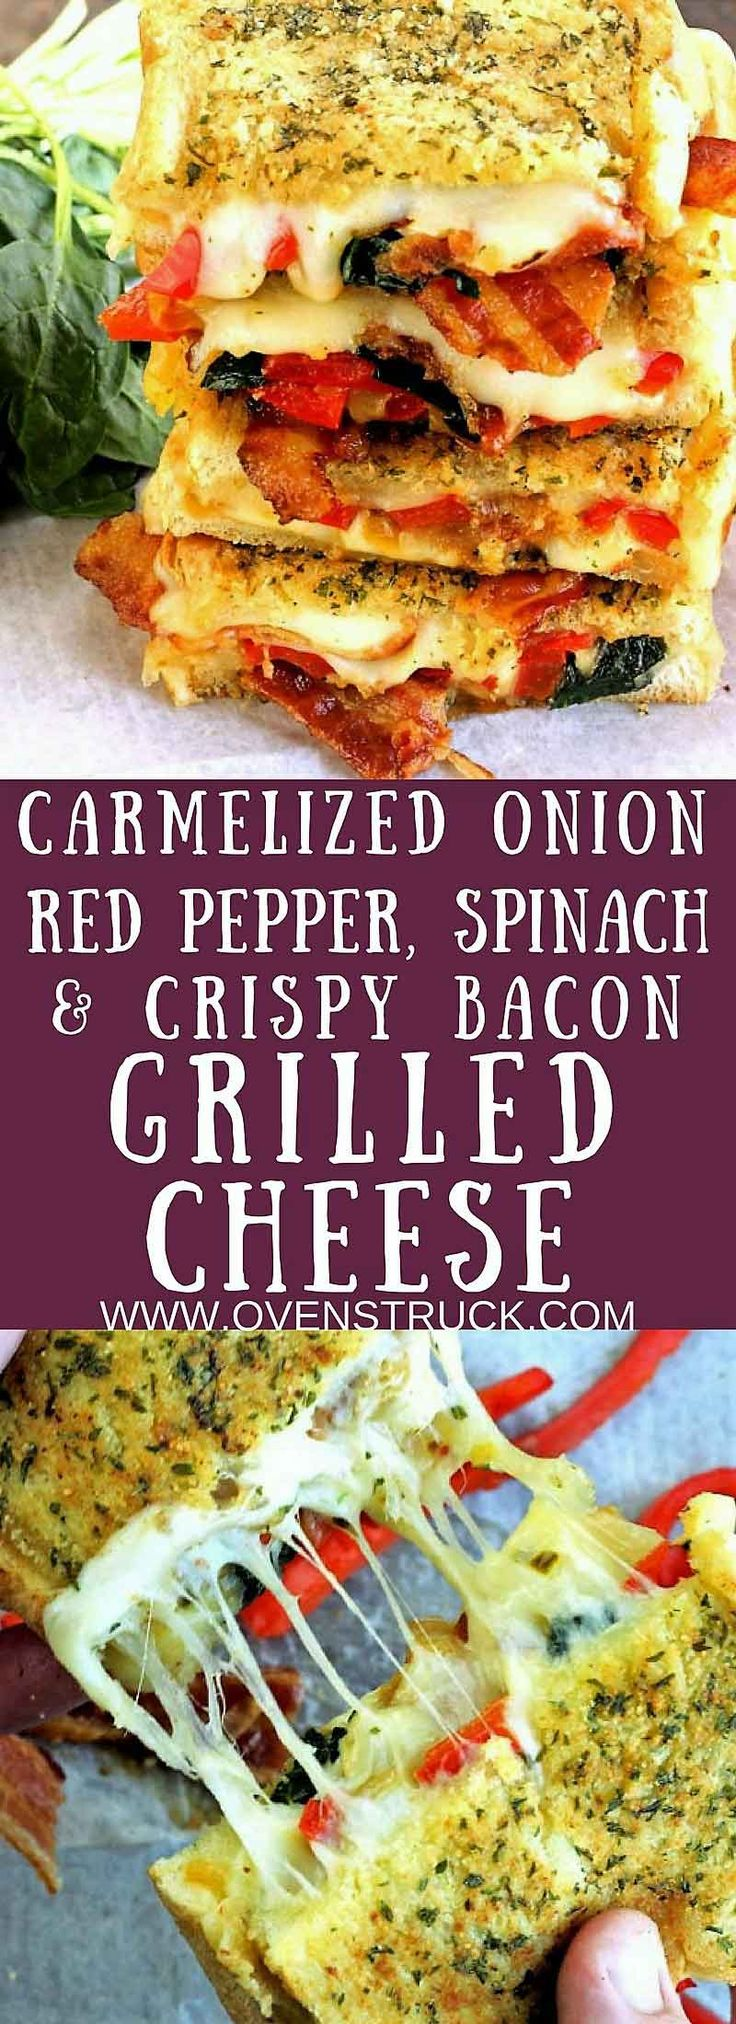 Caramelized onions, sauteed red peppers, and sauteed spinach combine with crispy bacon, pepper jack, and mozzarella cheese for National Grilled Cheese Day!